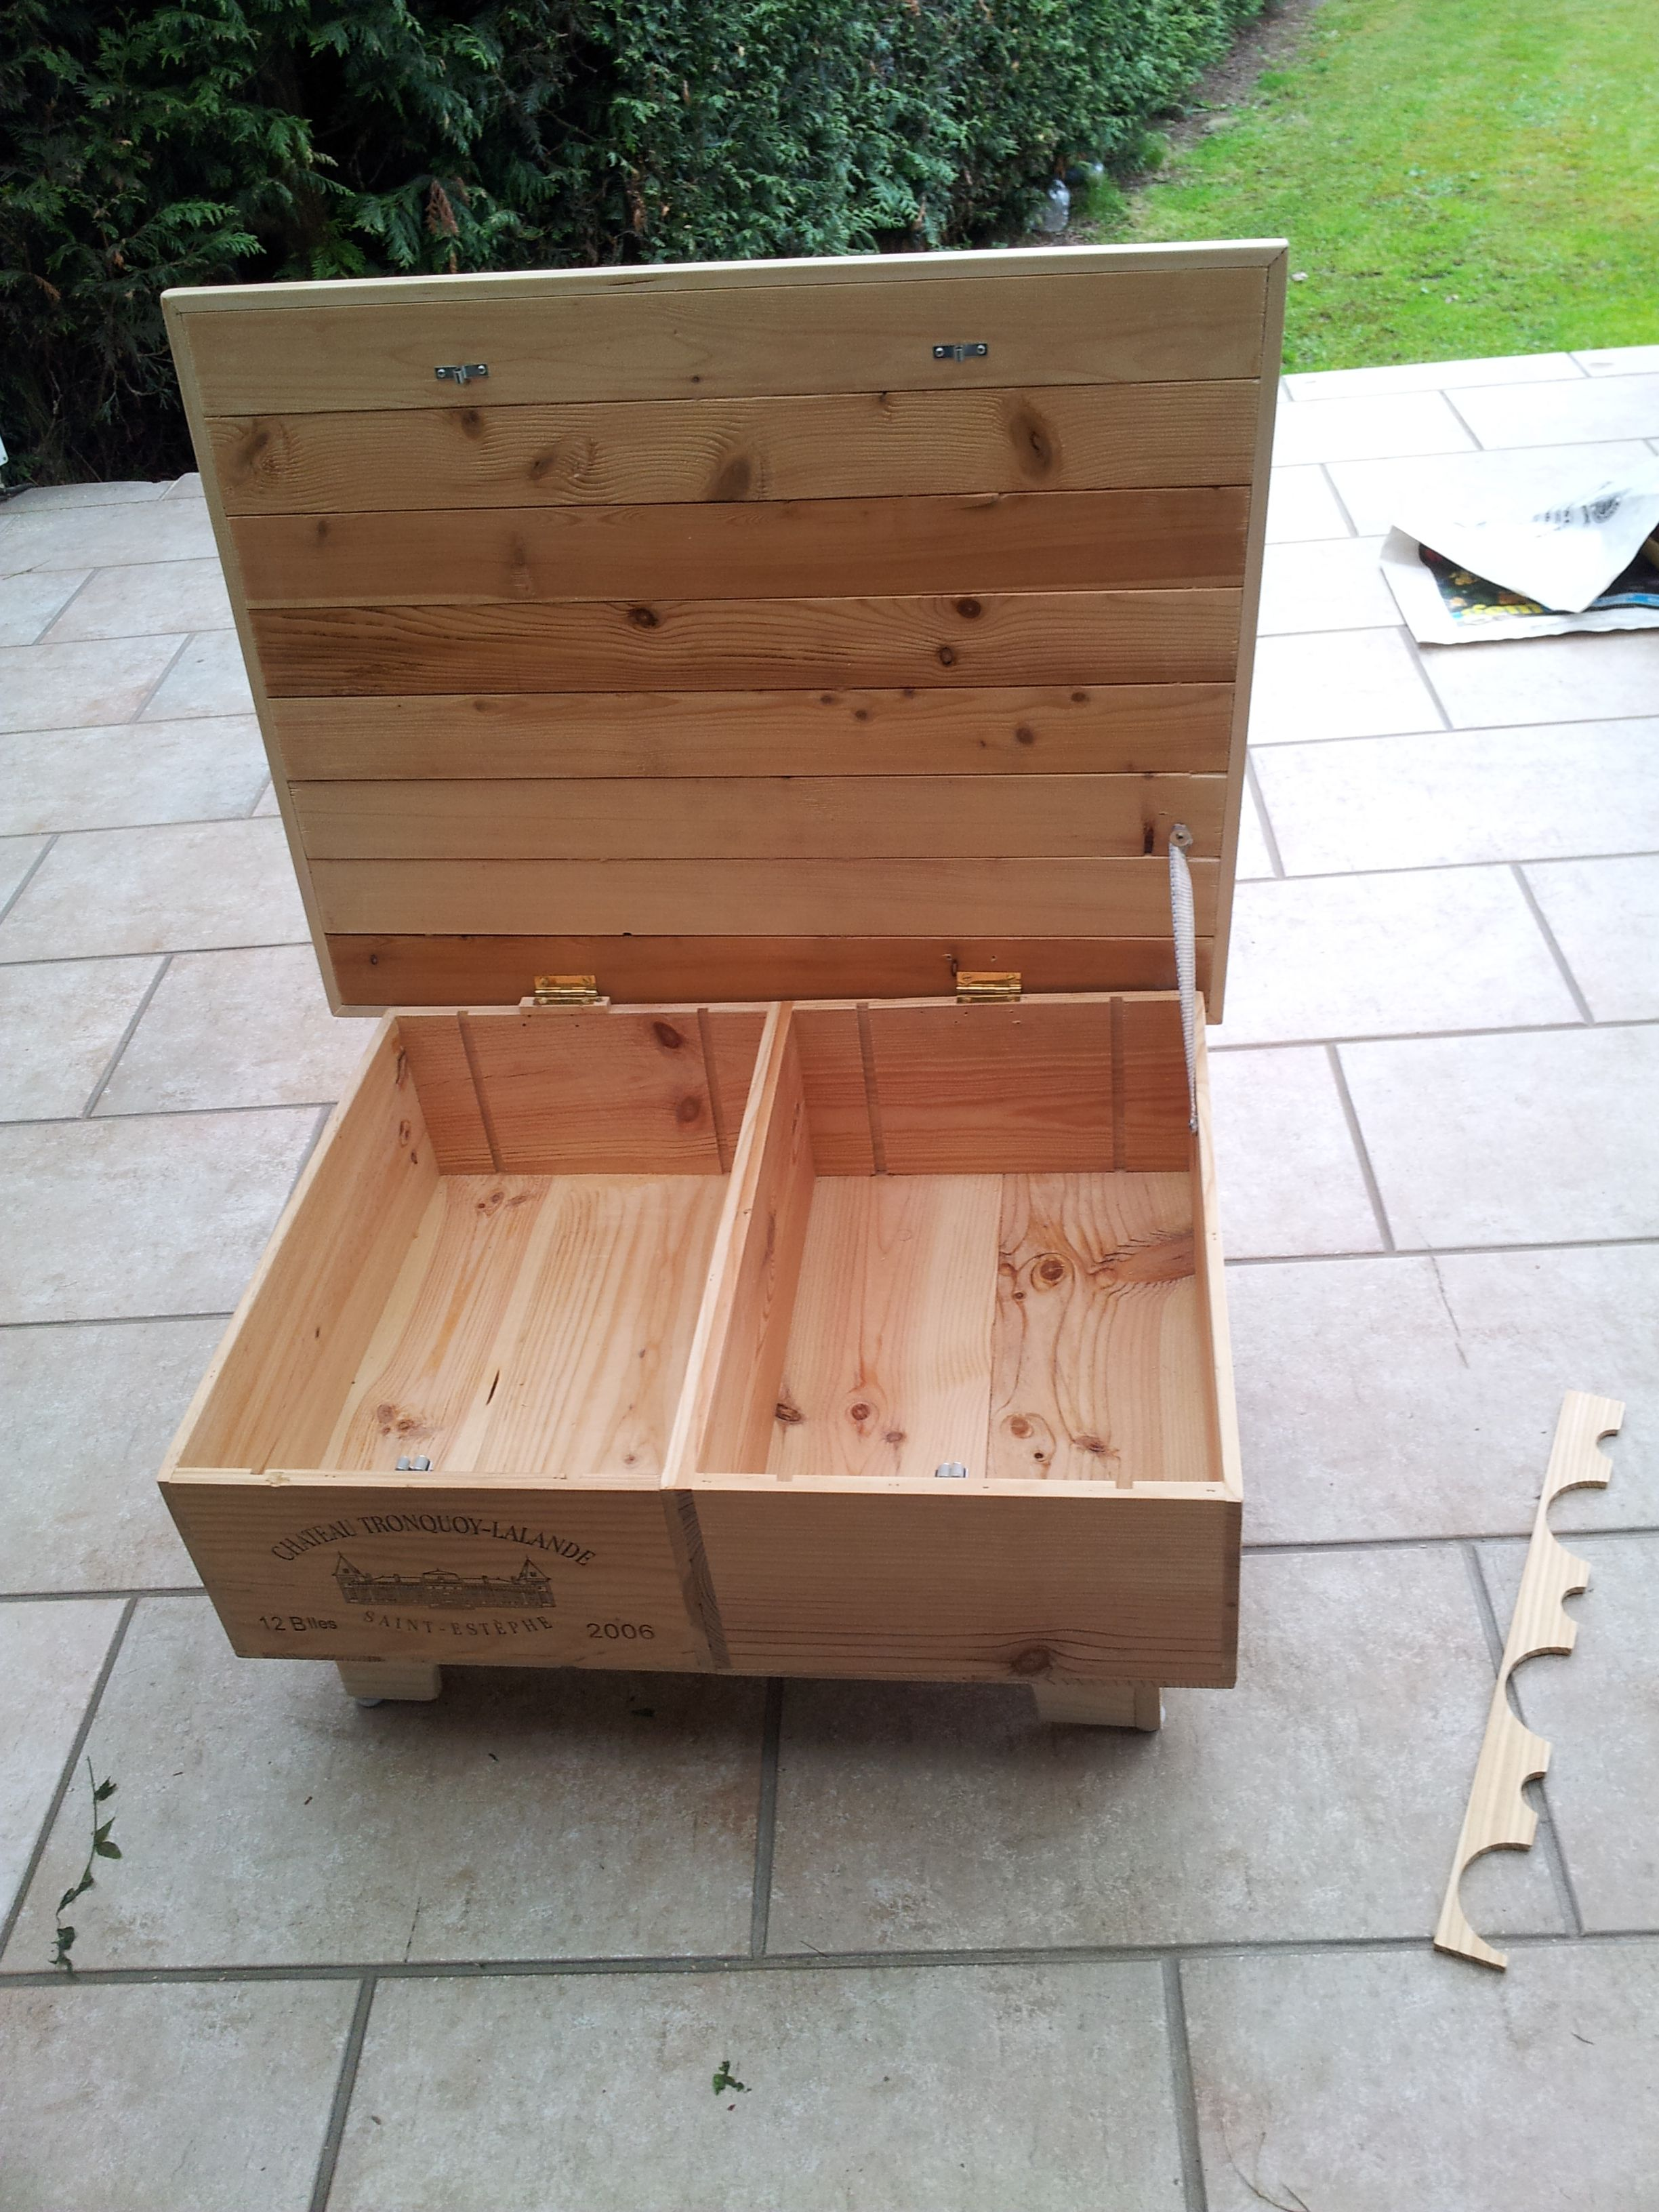 Upcycled Wine Box Into Coffee Table With Pallet Top